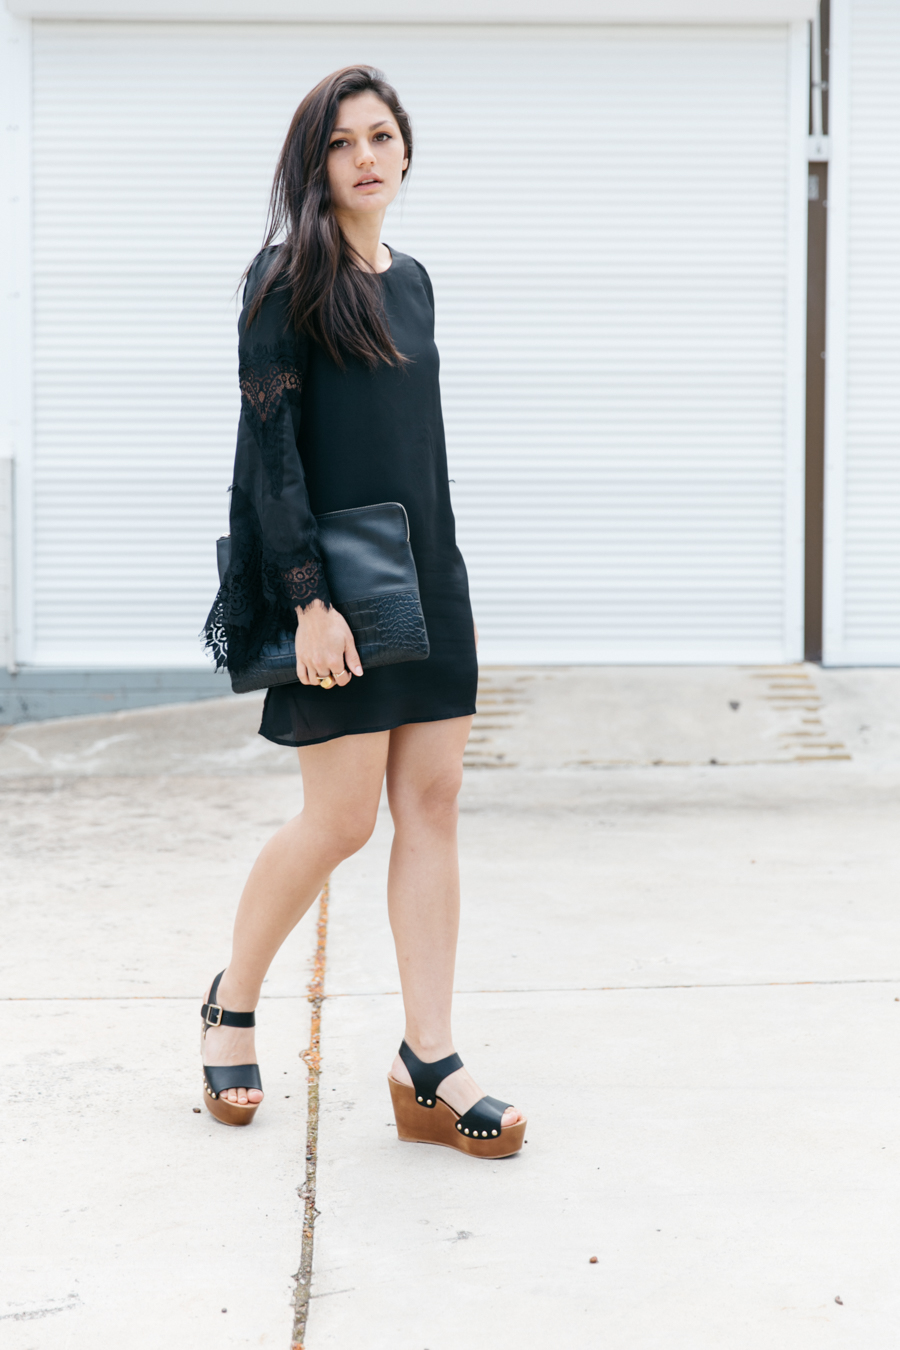 Wedge clog sandals with black mini dress. Boho outfit.